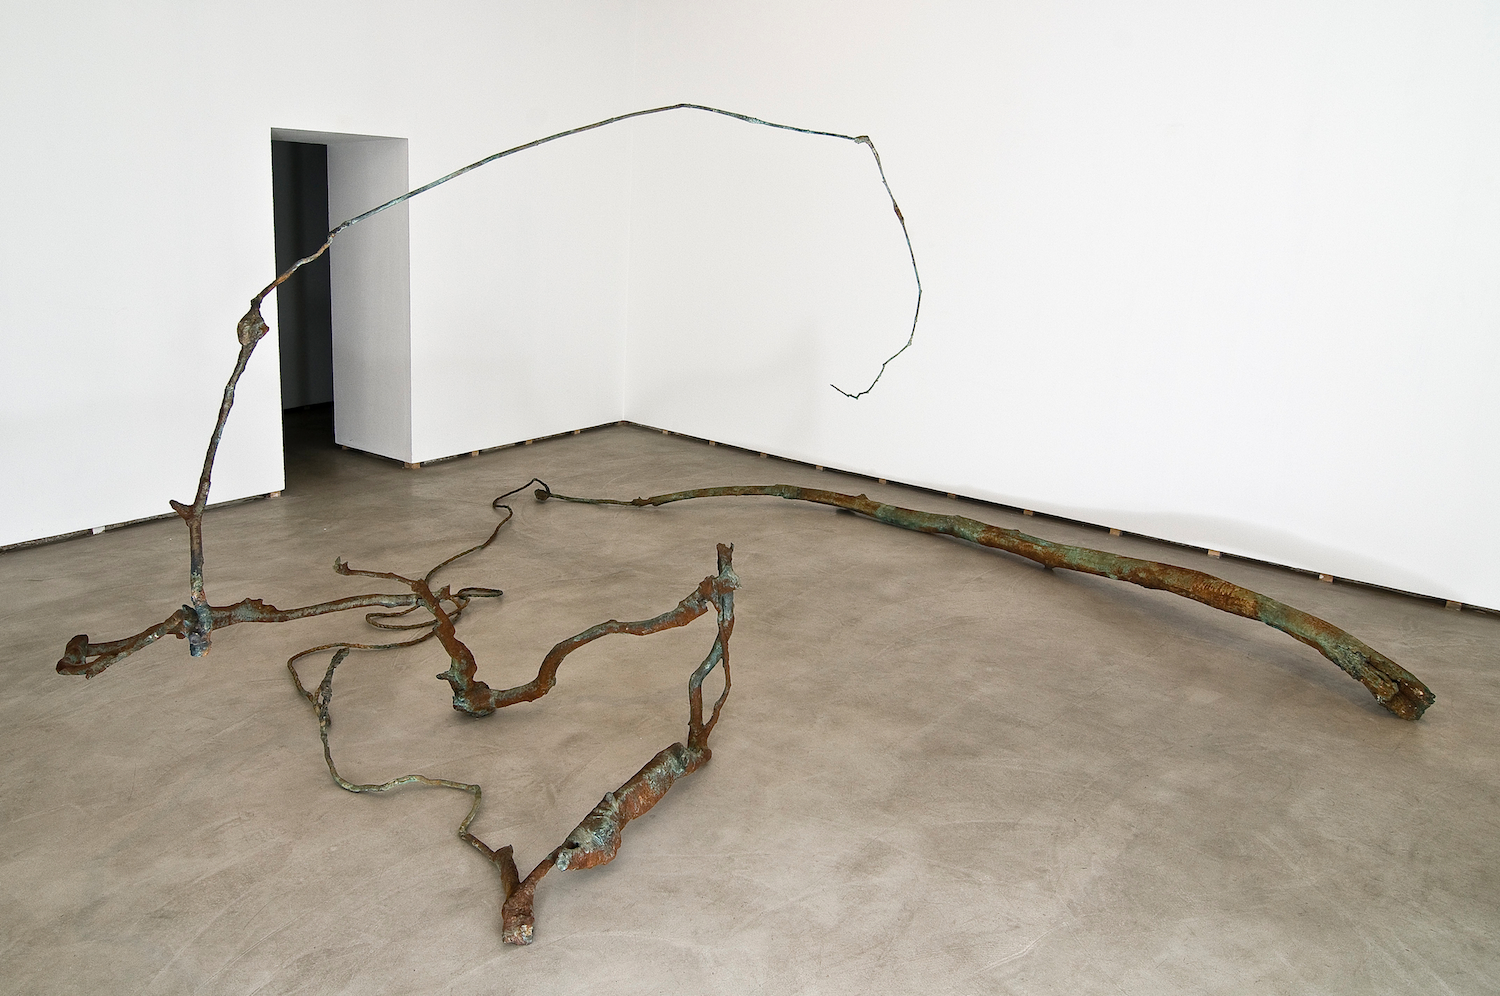 Jay Heikes  The Material Mine  2011 Federica Schiavo Gallery, Rome Installation view